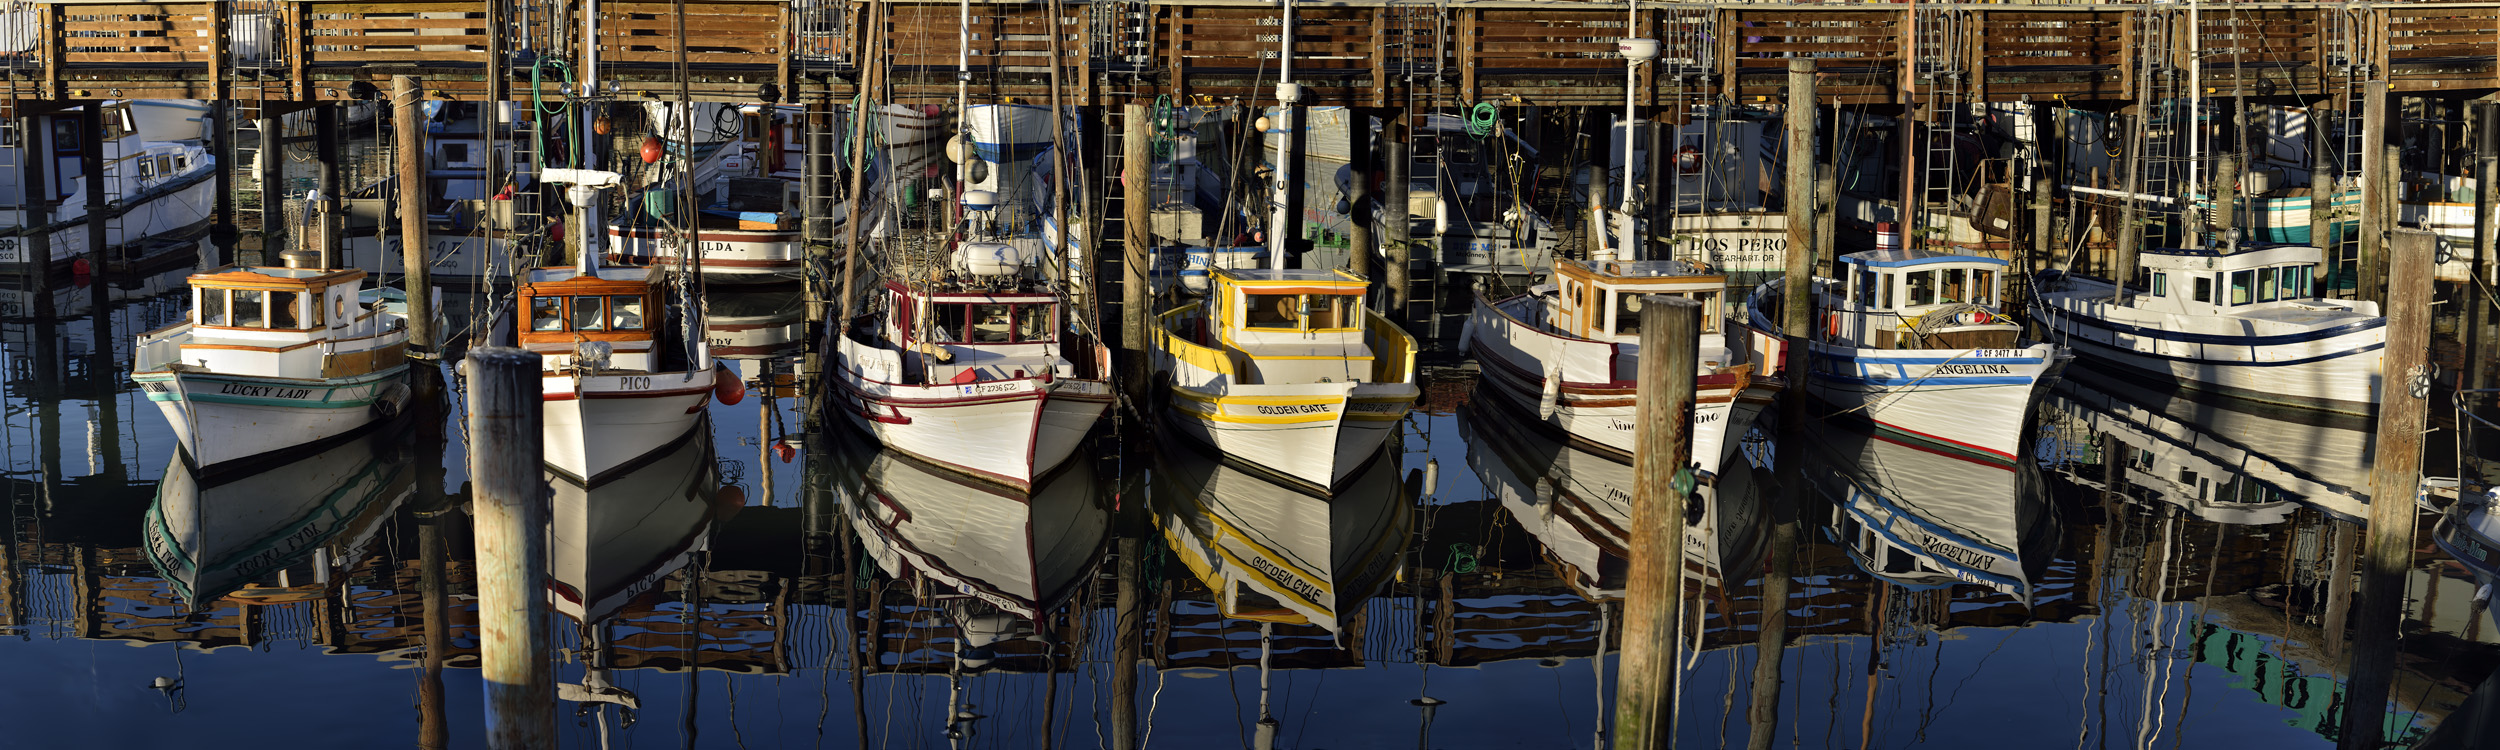 Vessels at Fisherman's wharf